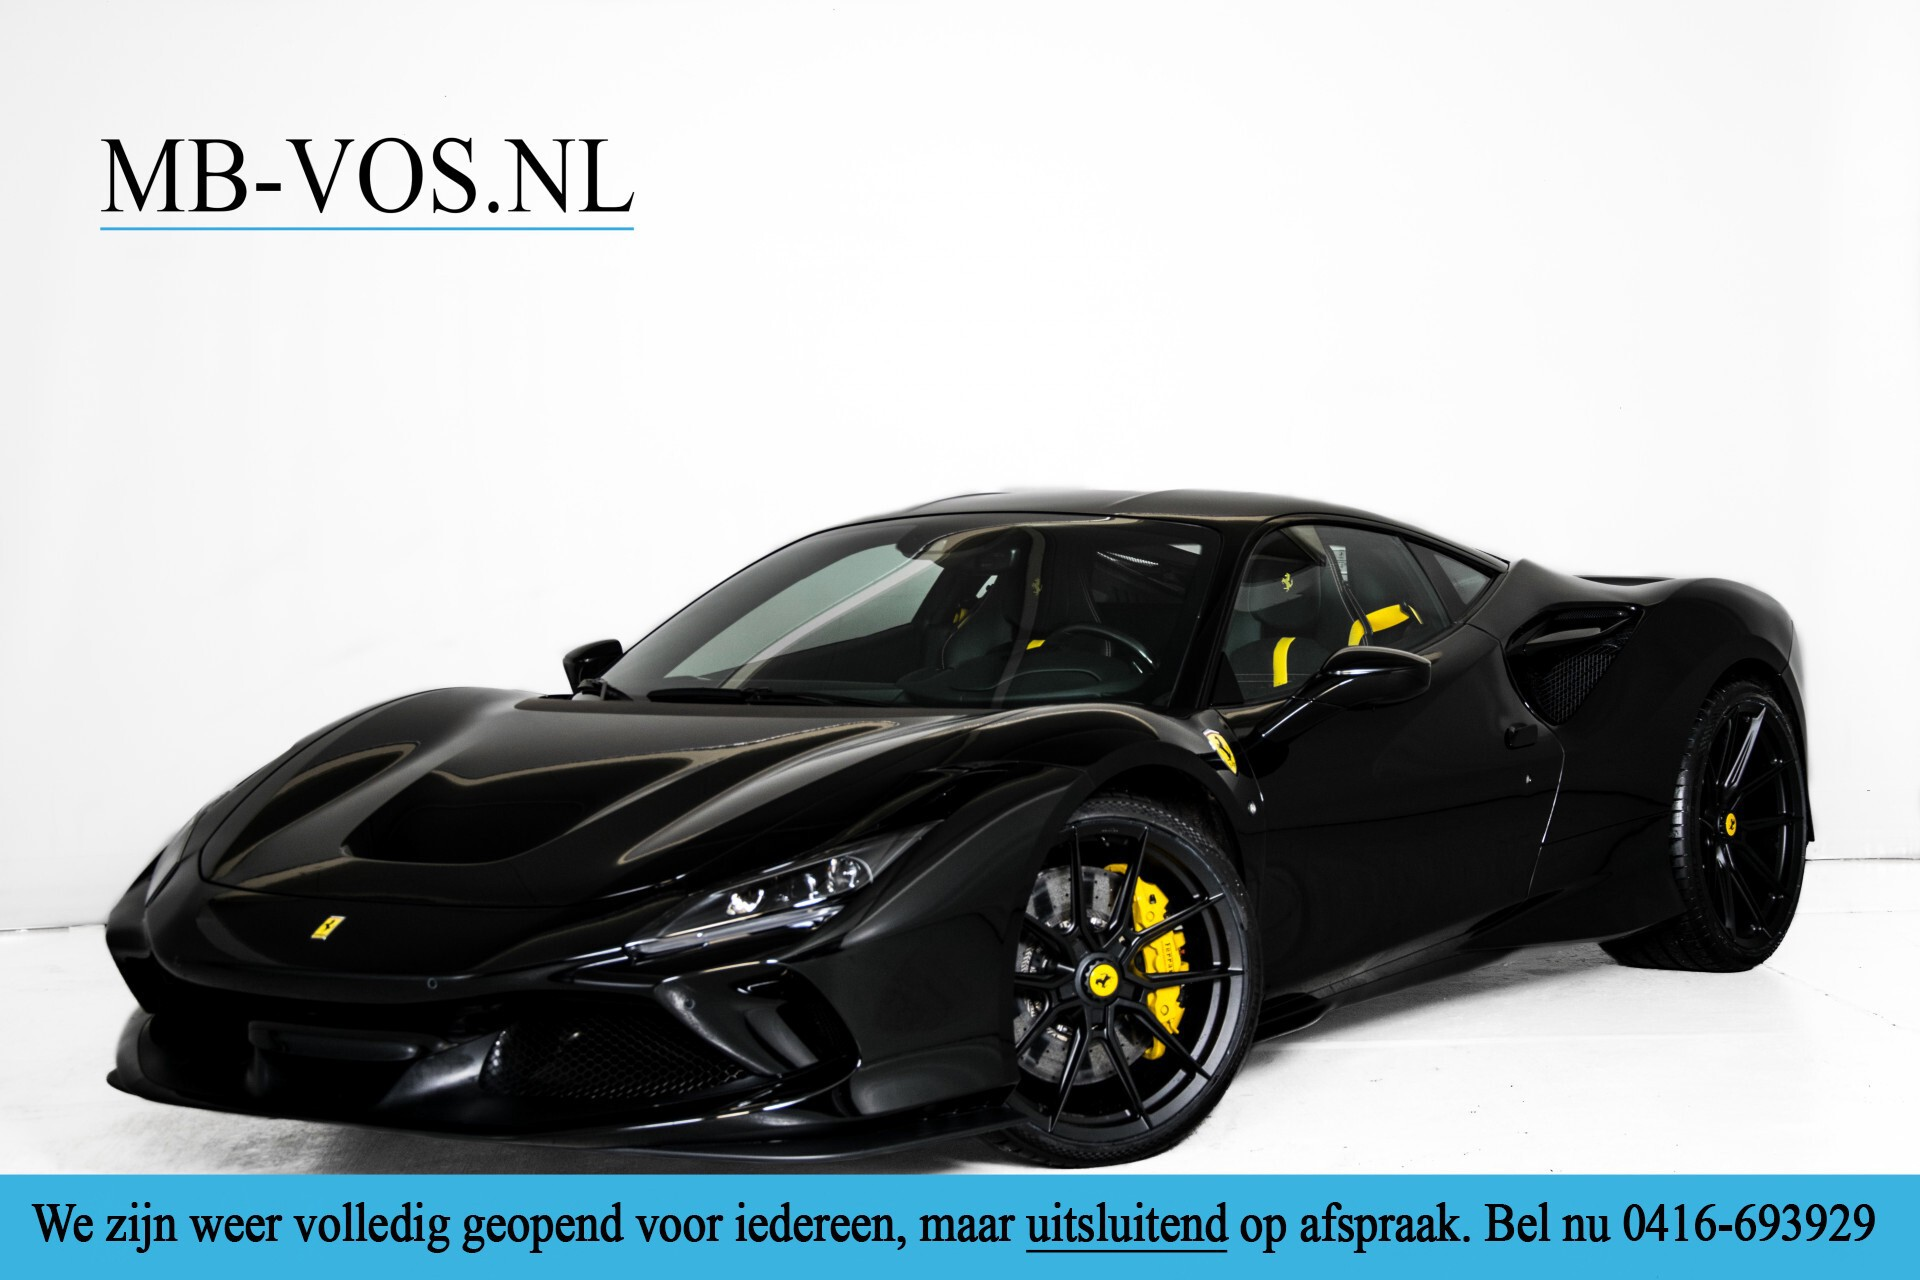 Ferrari F8 Tributo 3.9 V8 HELE Novitech Full Carbon/Lift/Racing Seats/Passenger Display/Hifi Foto 1